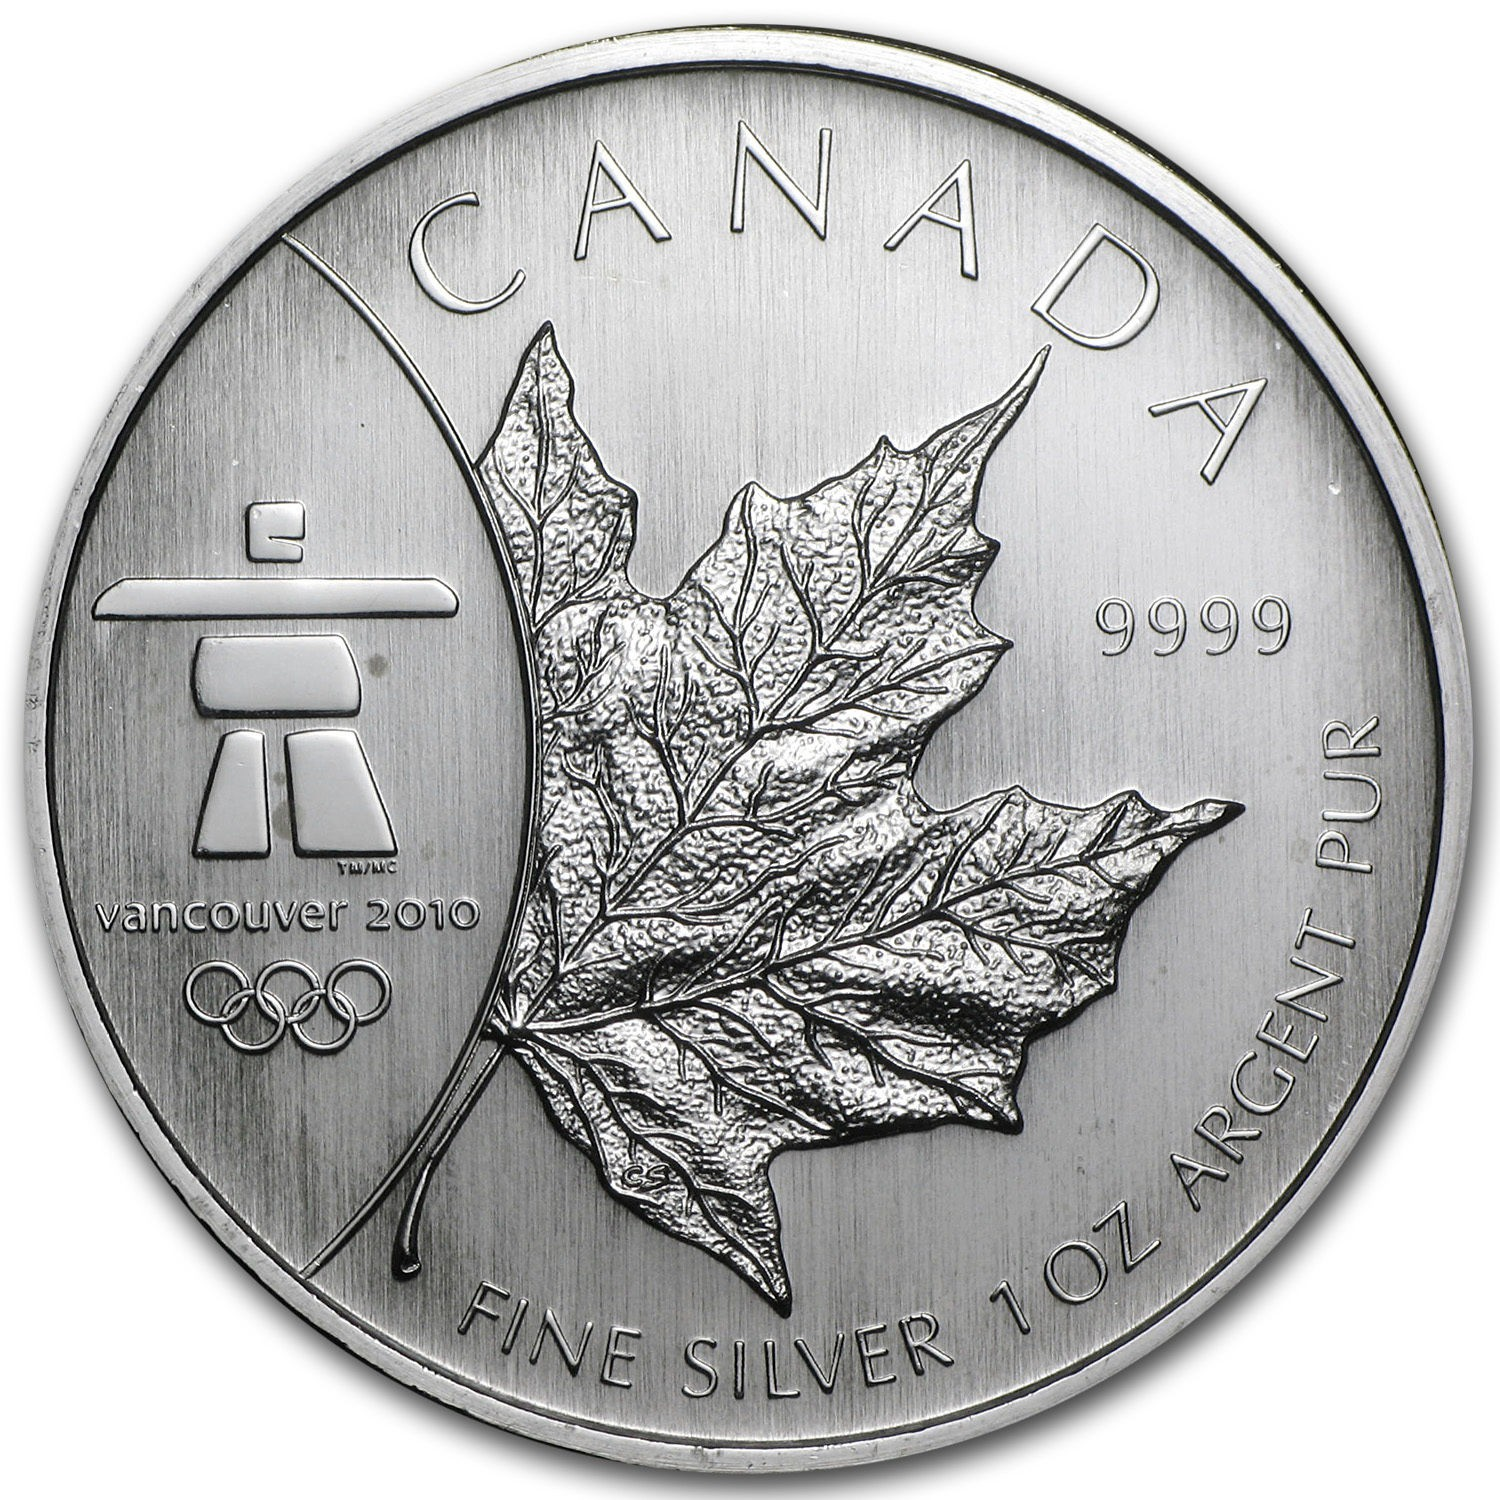 Canadian Maple Leaf, $5.00 Silver Coin